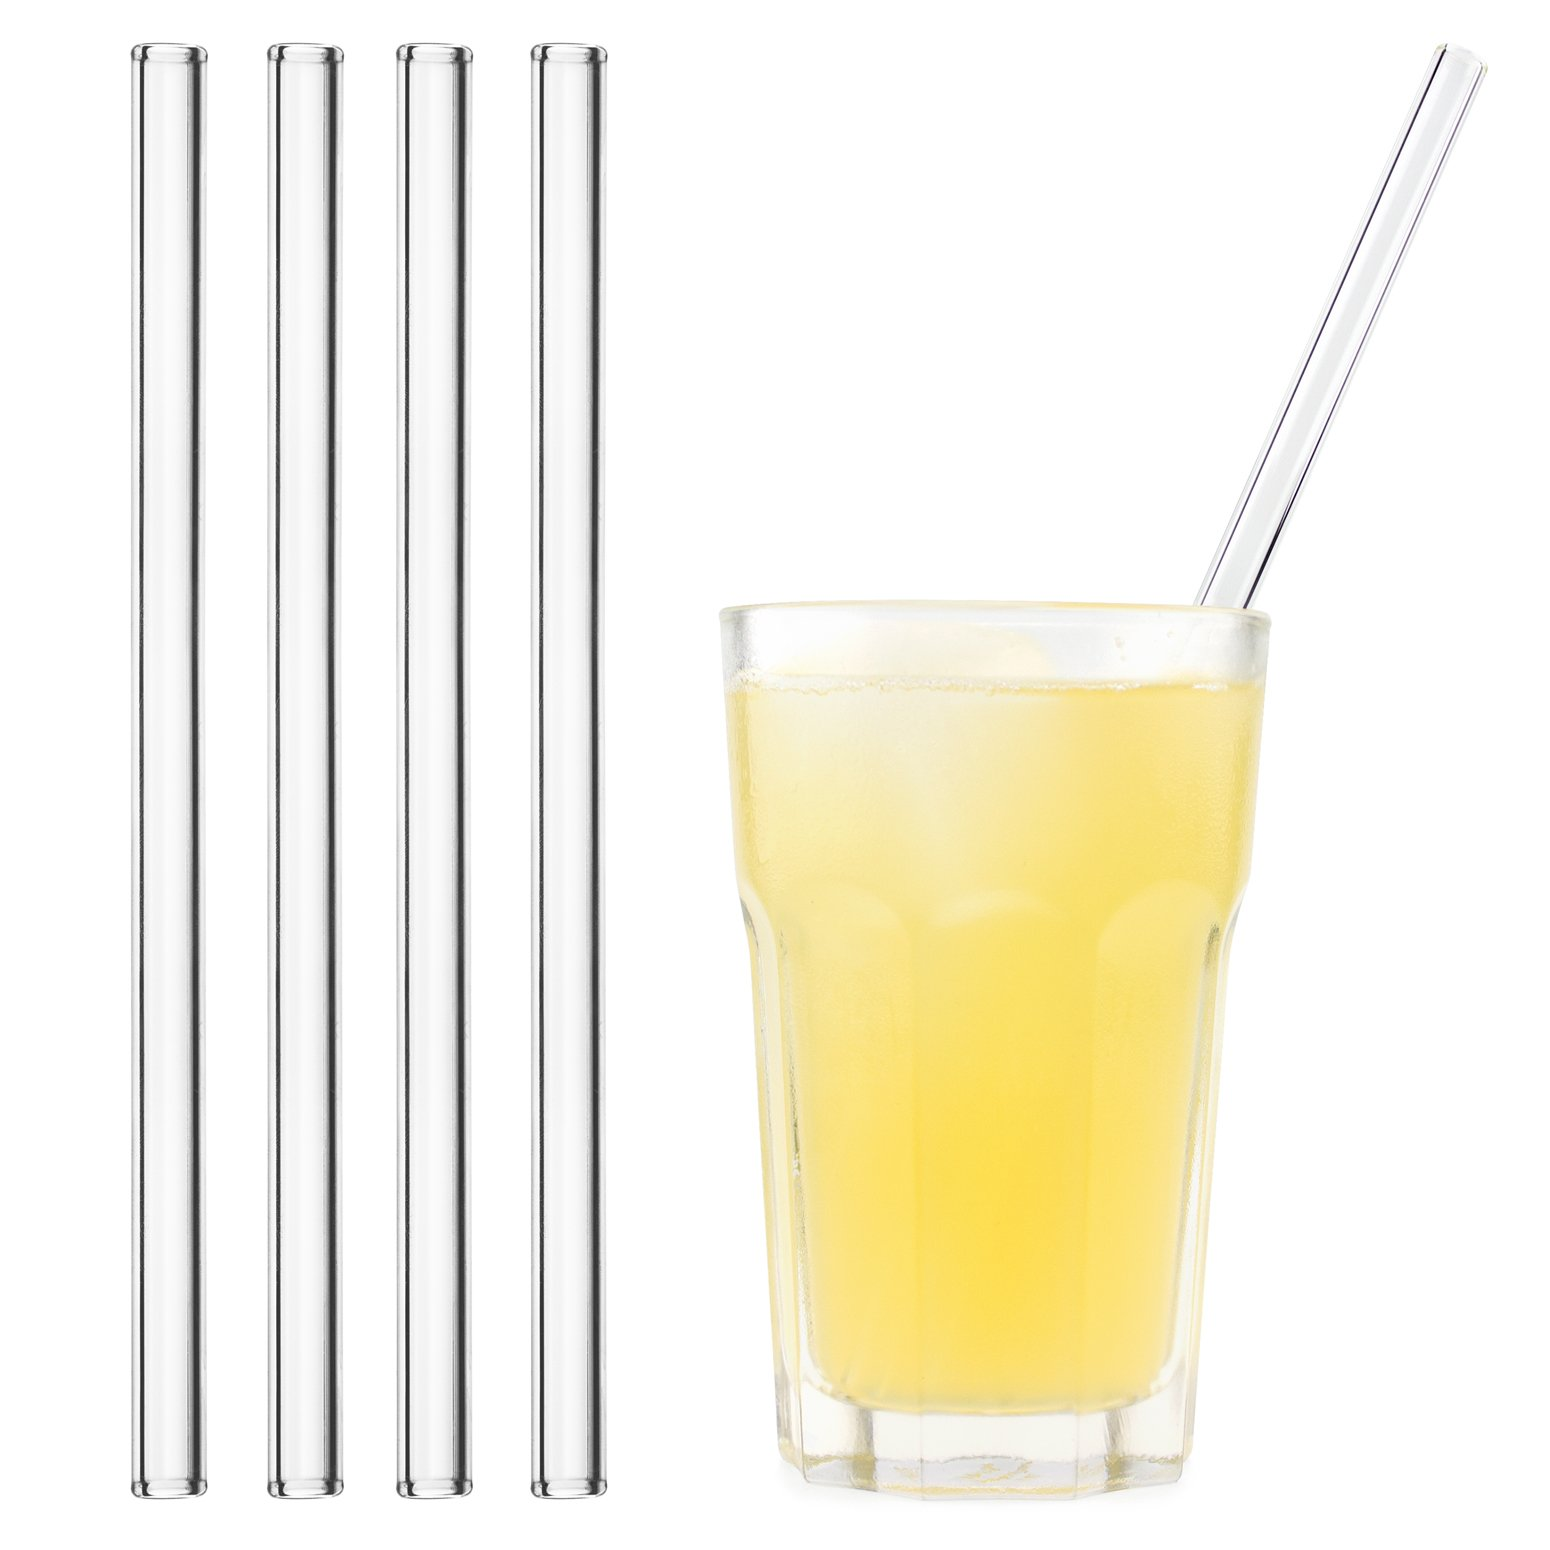 HALM  Glass Straws - 4 Reusable Drinking Straws + Plastic-Free Cleaning Brush - Made in Germany - Dishwasher Safe - Eco-Friendly - 23 cm (9 in) x 0.9 cm - Straight - Perfect for Smoothies, Cocktails